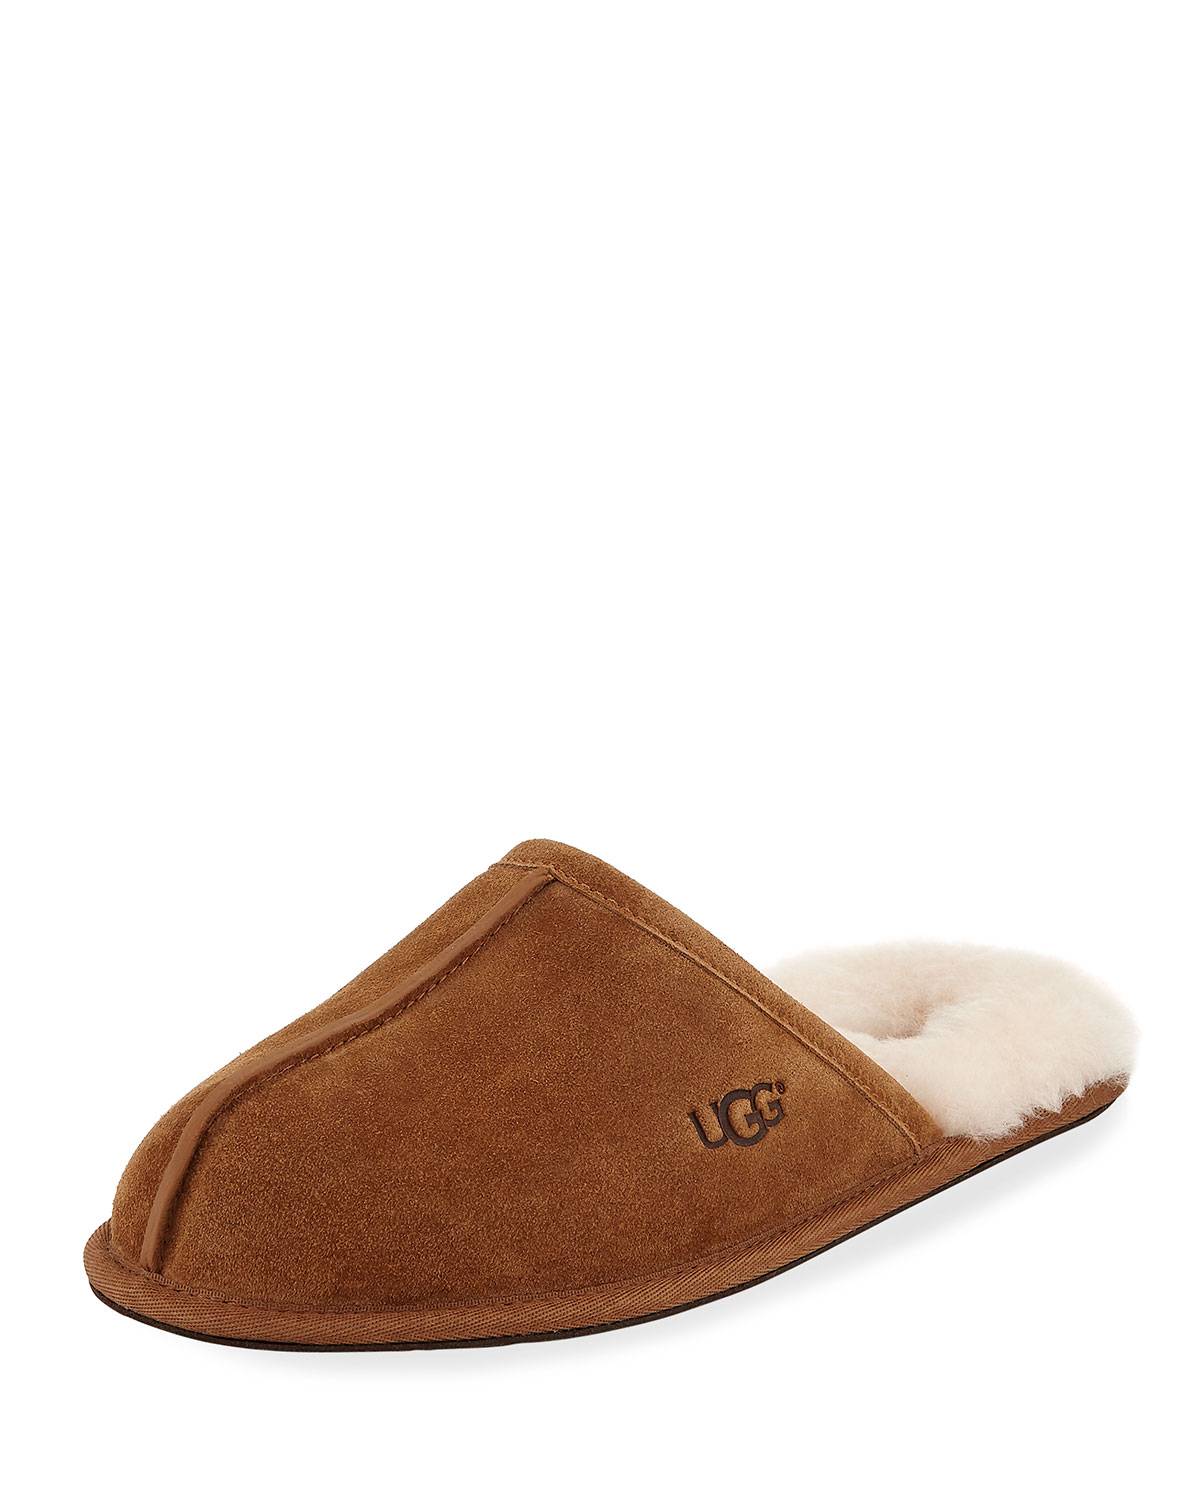 2c2fe314199e UGG Men s Scuff Shearling Mule Slipper